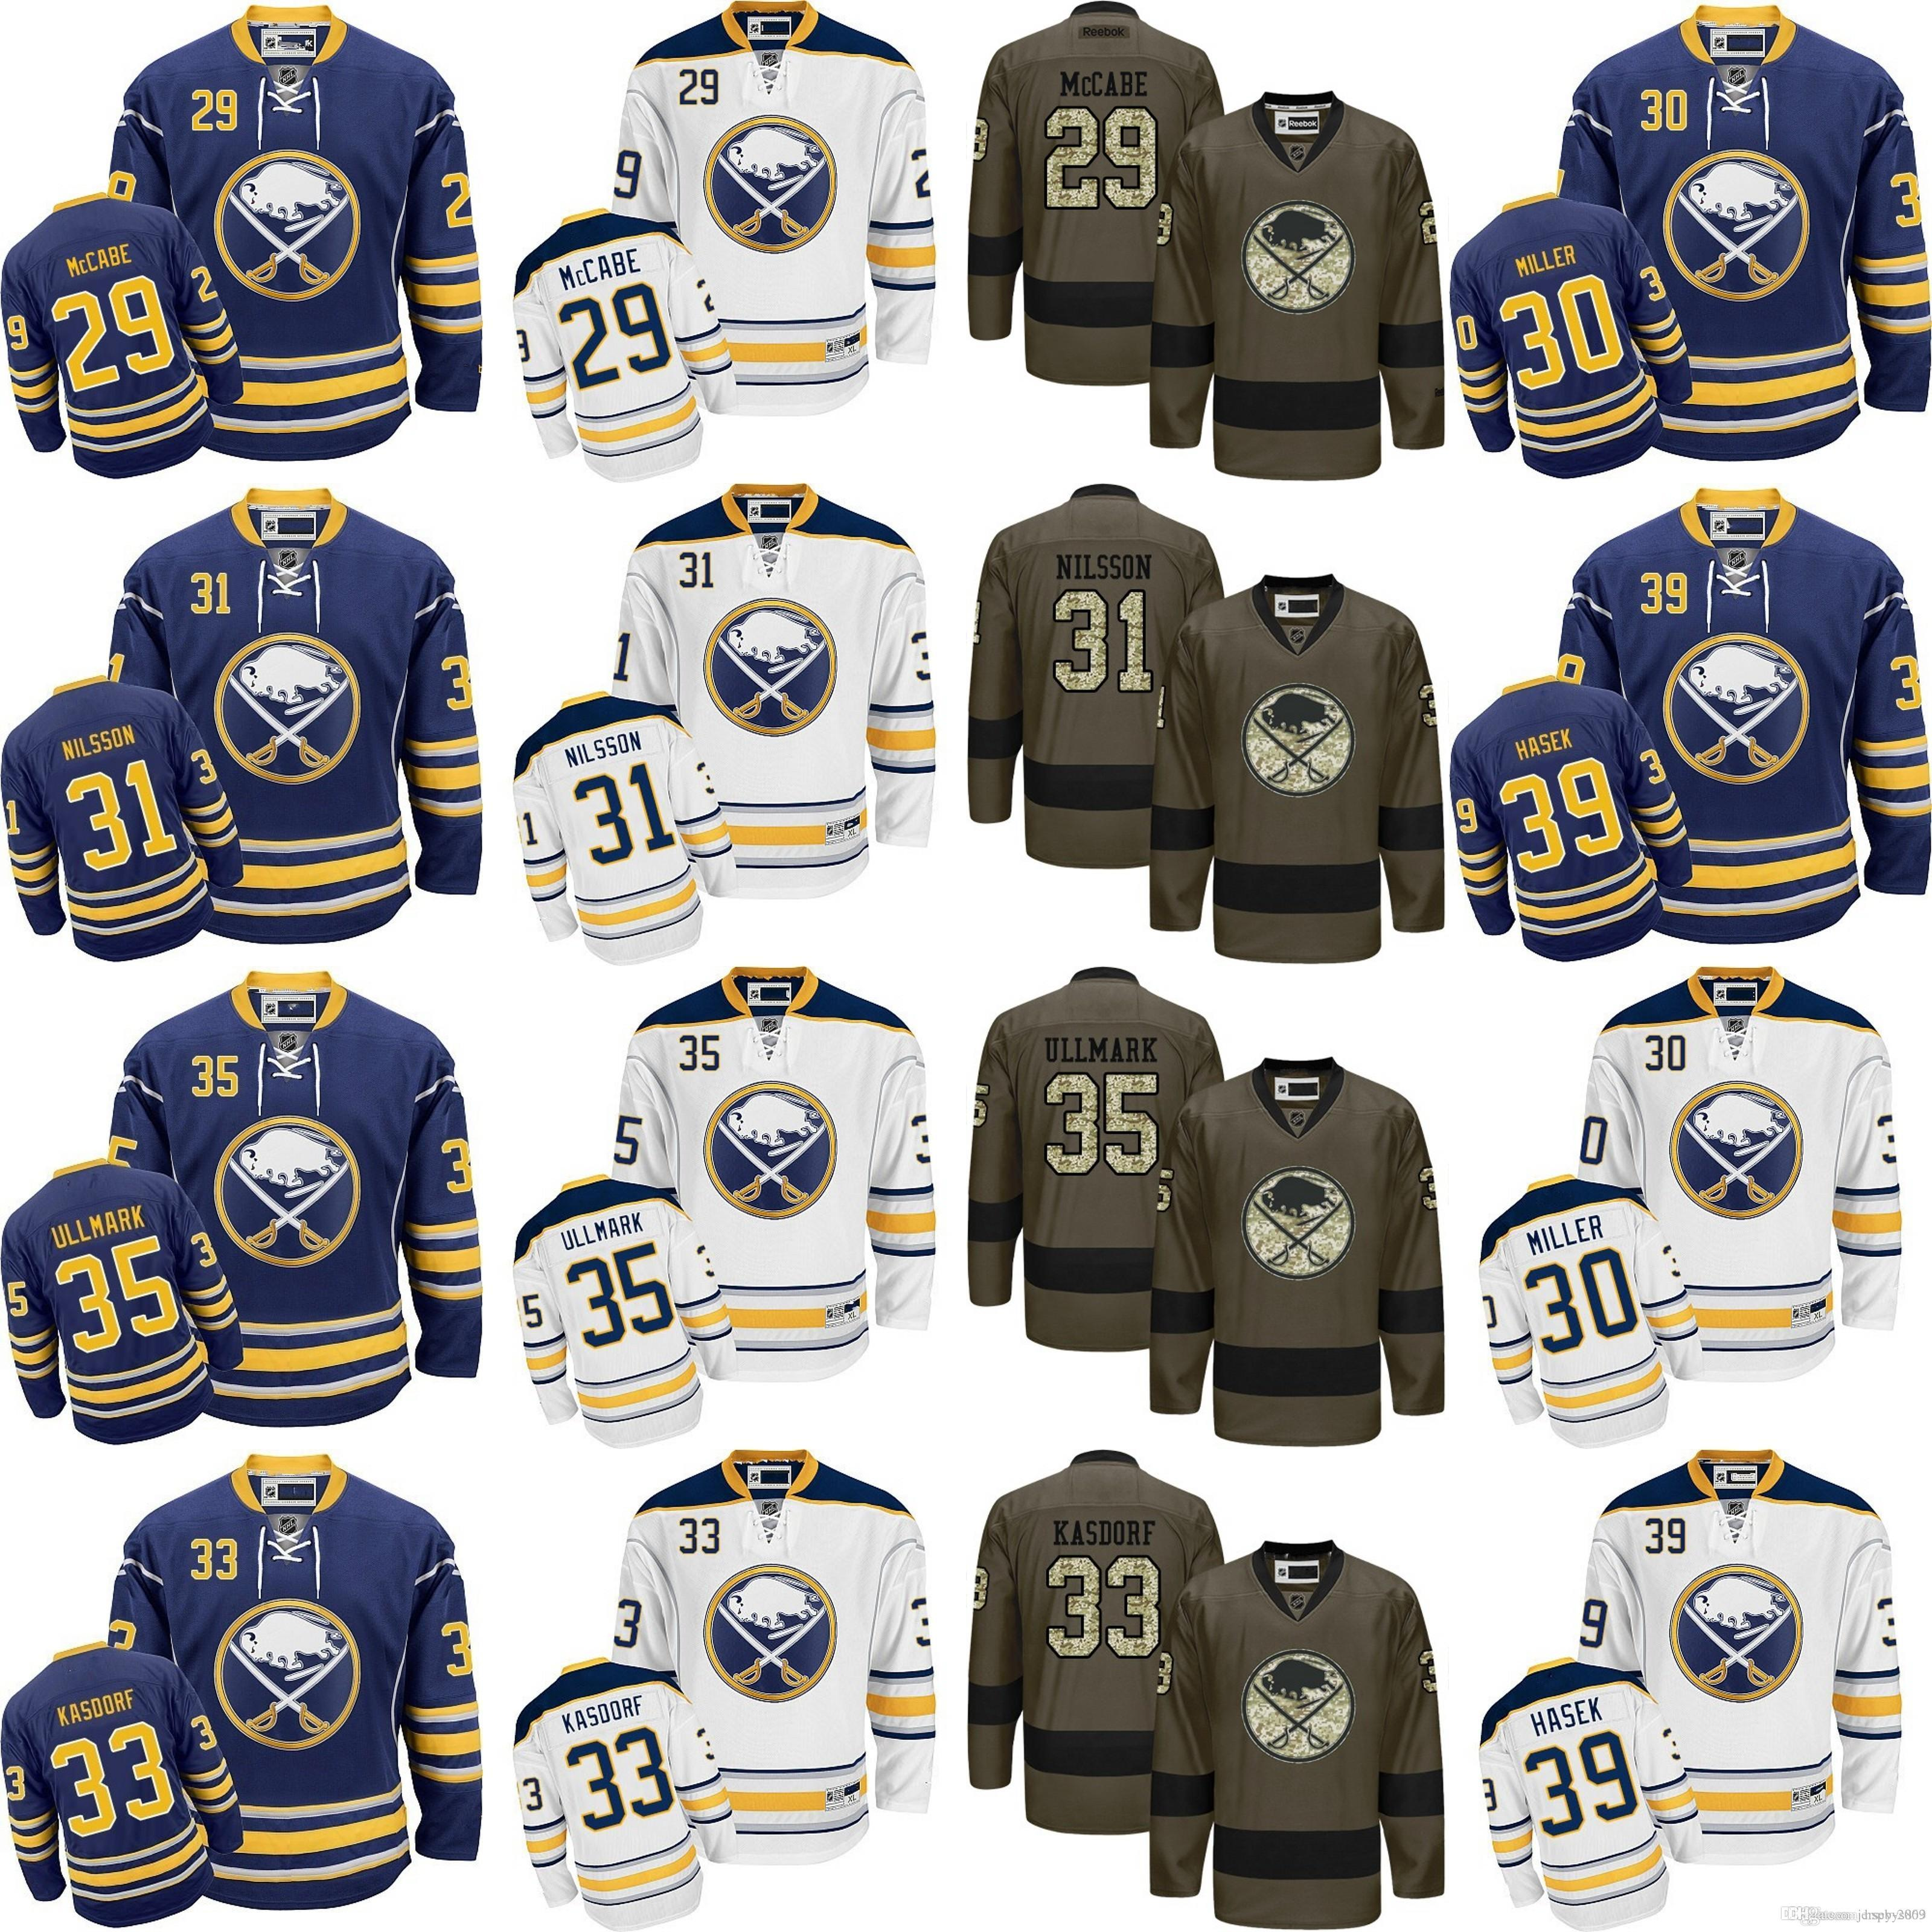 2ceab54fa ... shop 2017 mens buffalo sabre 29 jake mccabe 30 ryan mille 31 anders  nilsson 33 jason